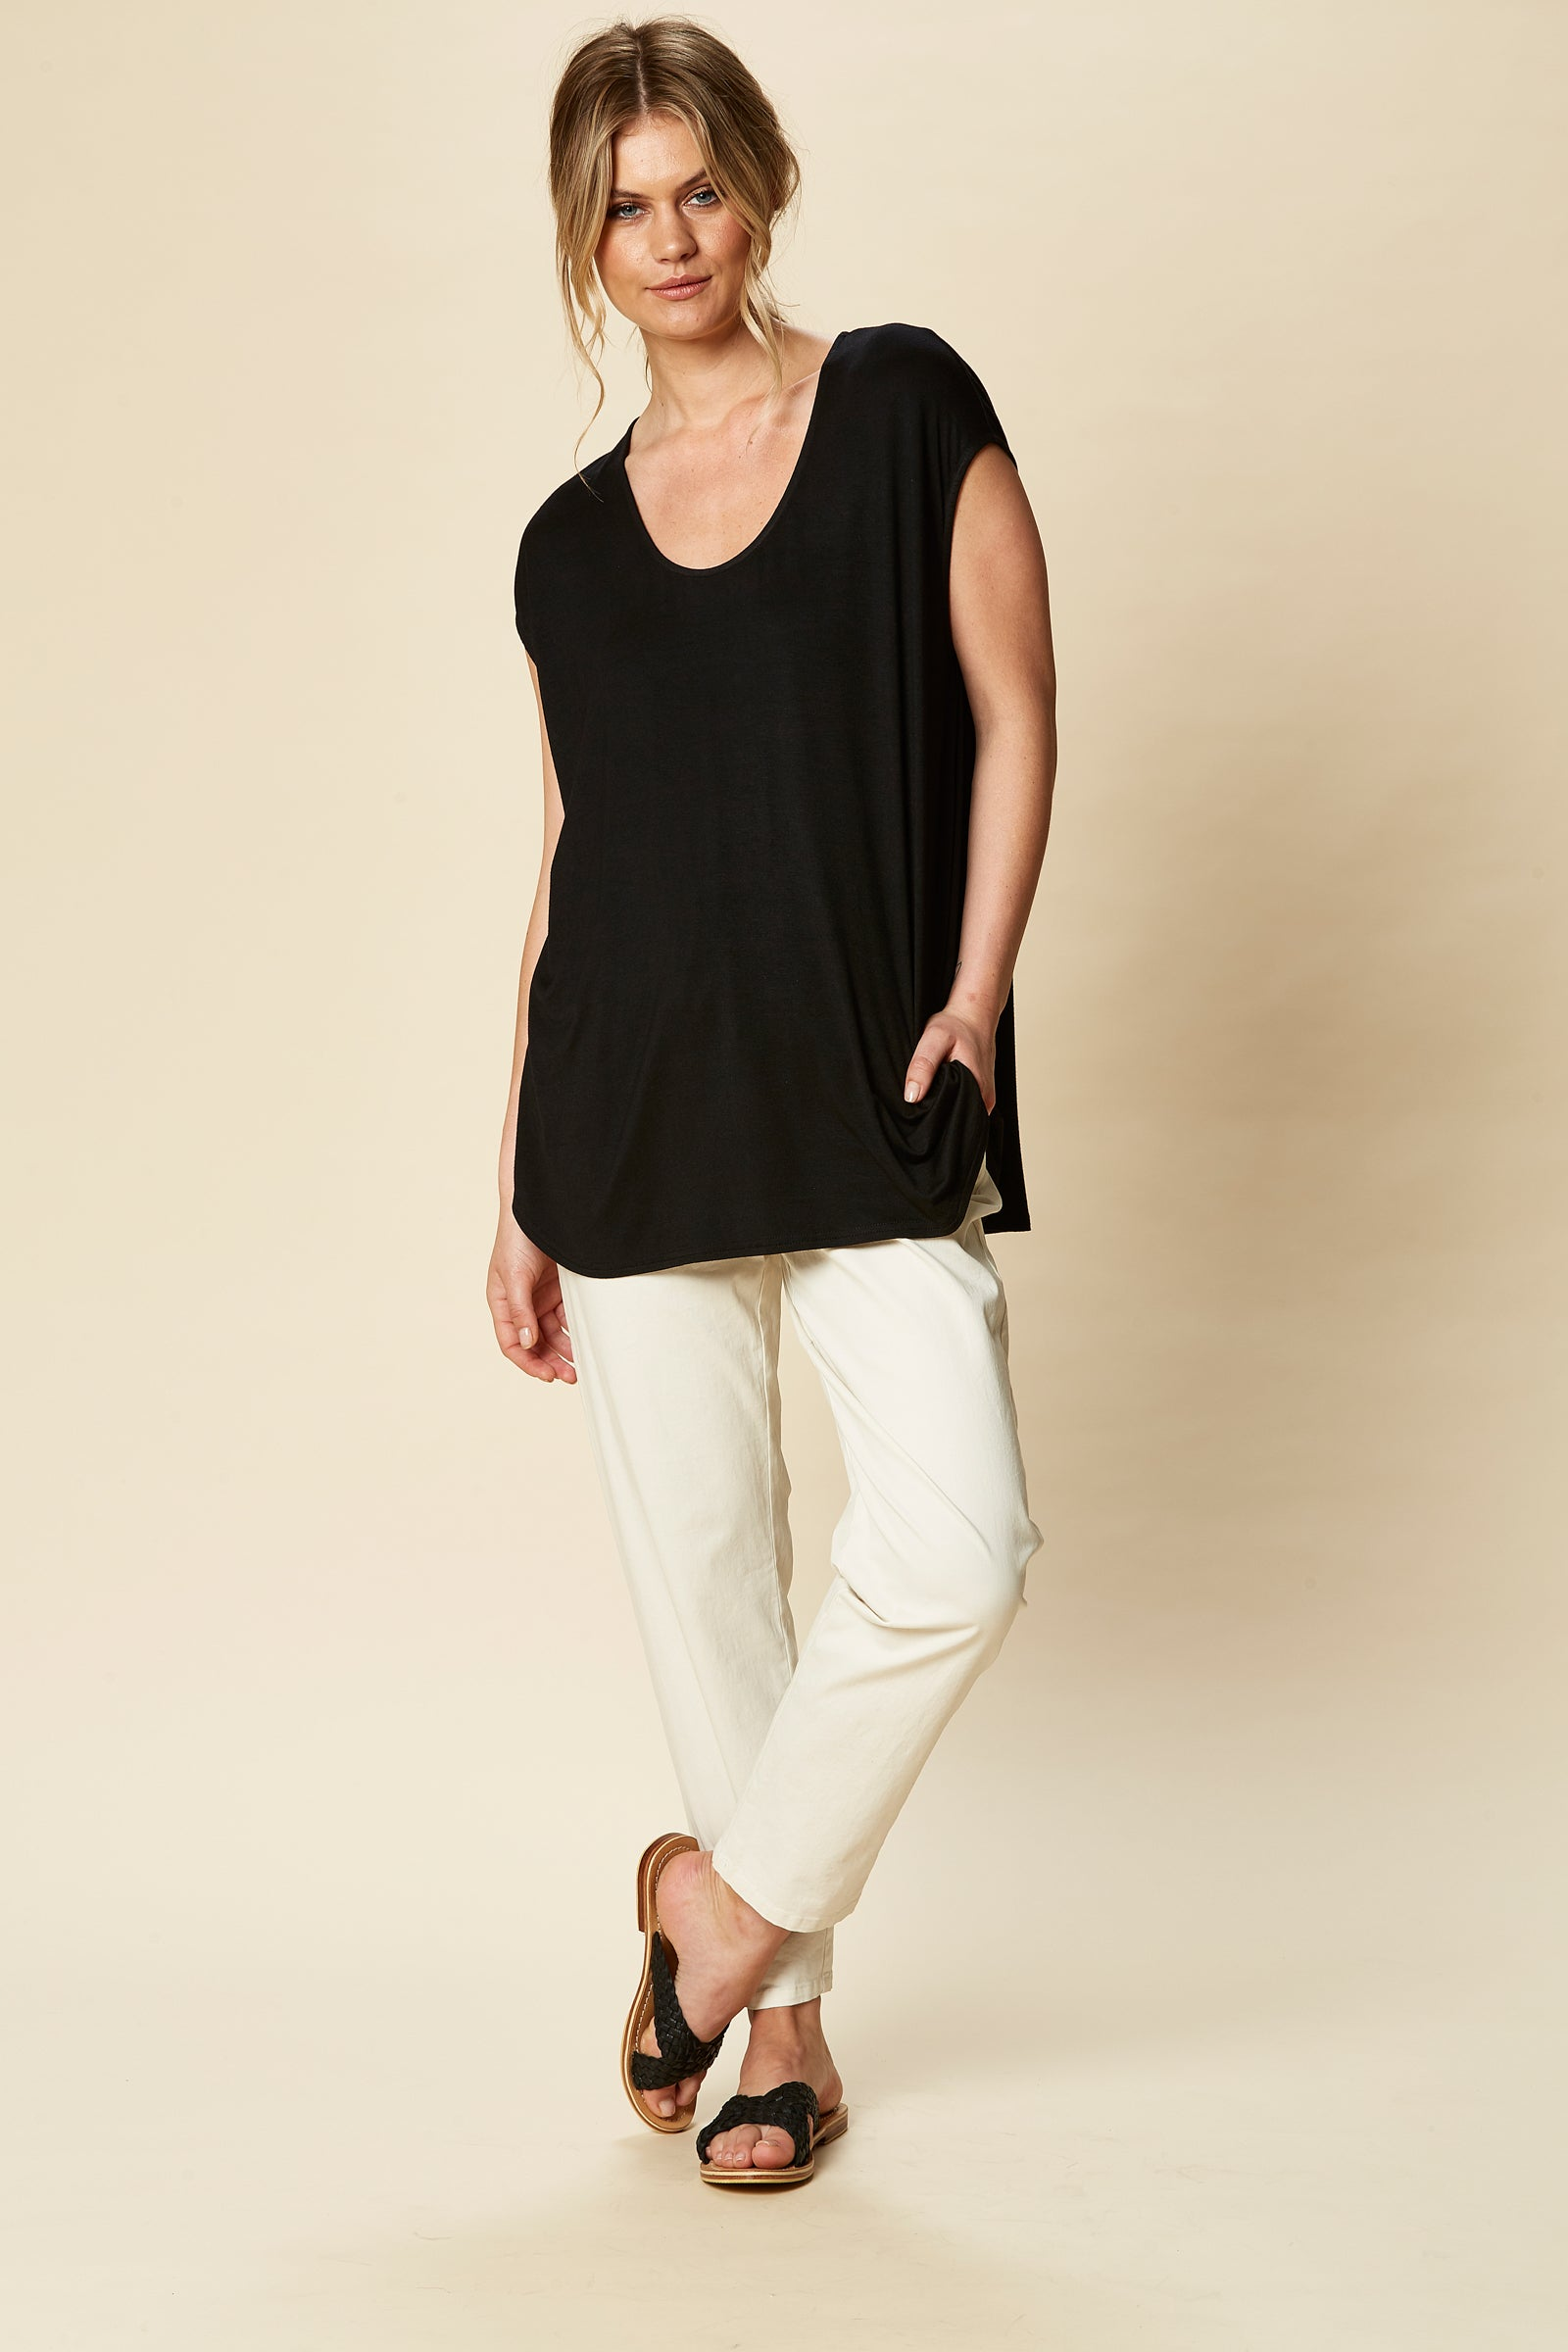 Sorella Top - Sable - eb&ive Clothing - Top Sleeveless